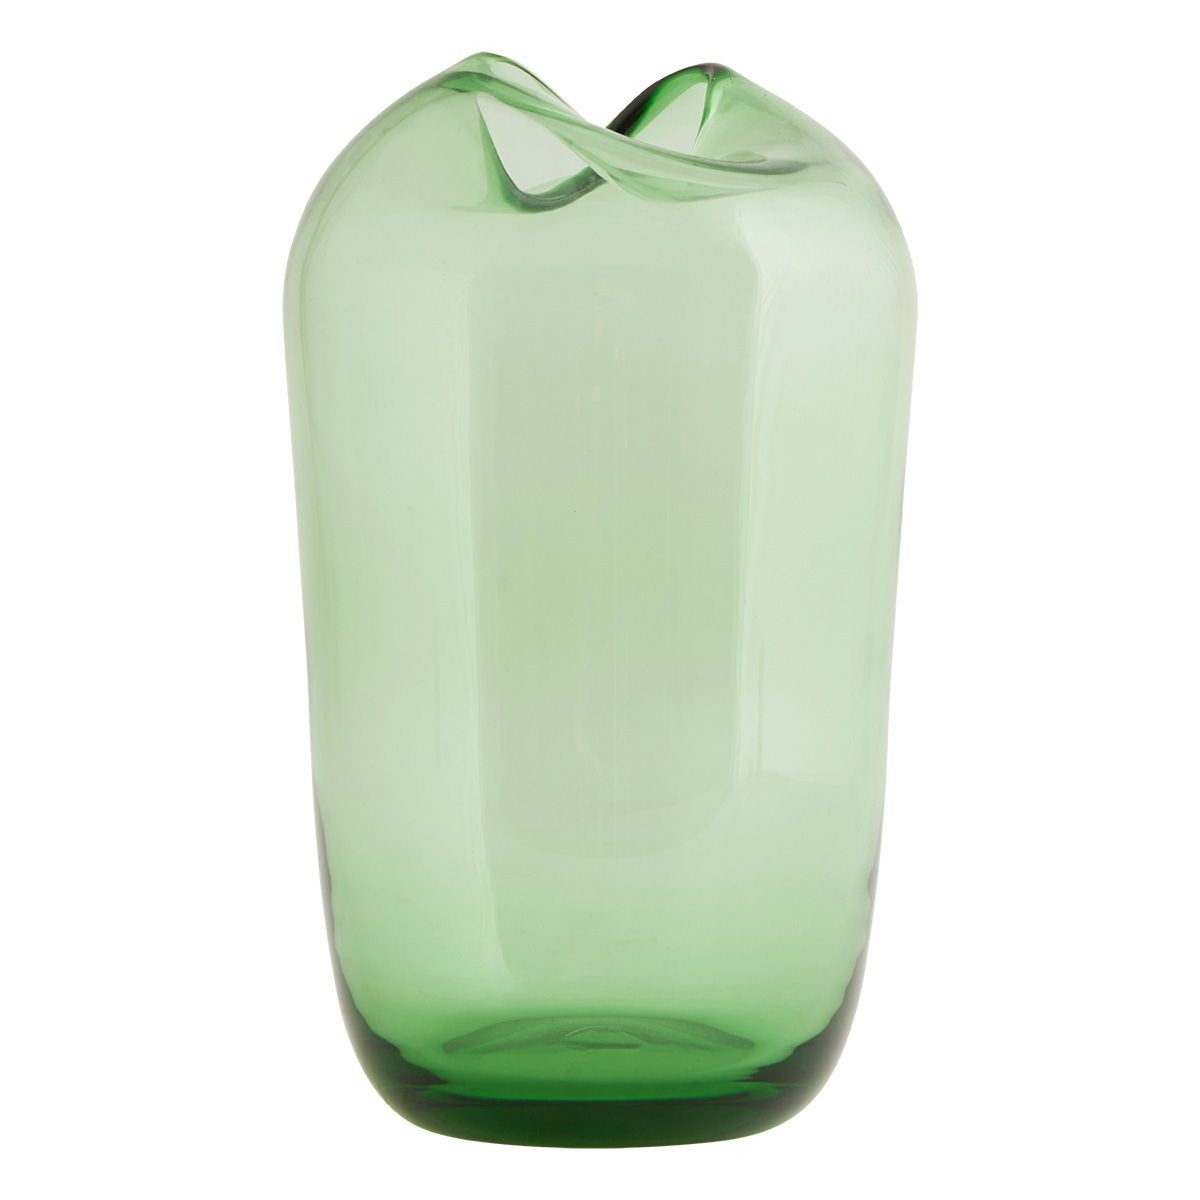 large clear vases for cheap of elegantna vaza wave z barevnaho skla od danska firmy house doctor within cuemars cuemars large green wave vase this beautiful decorative vase will give a fresh and minimalist style to any room the wavy top gives a unique and